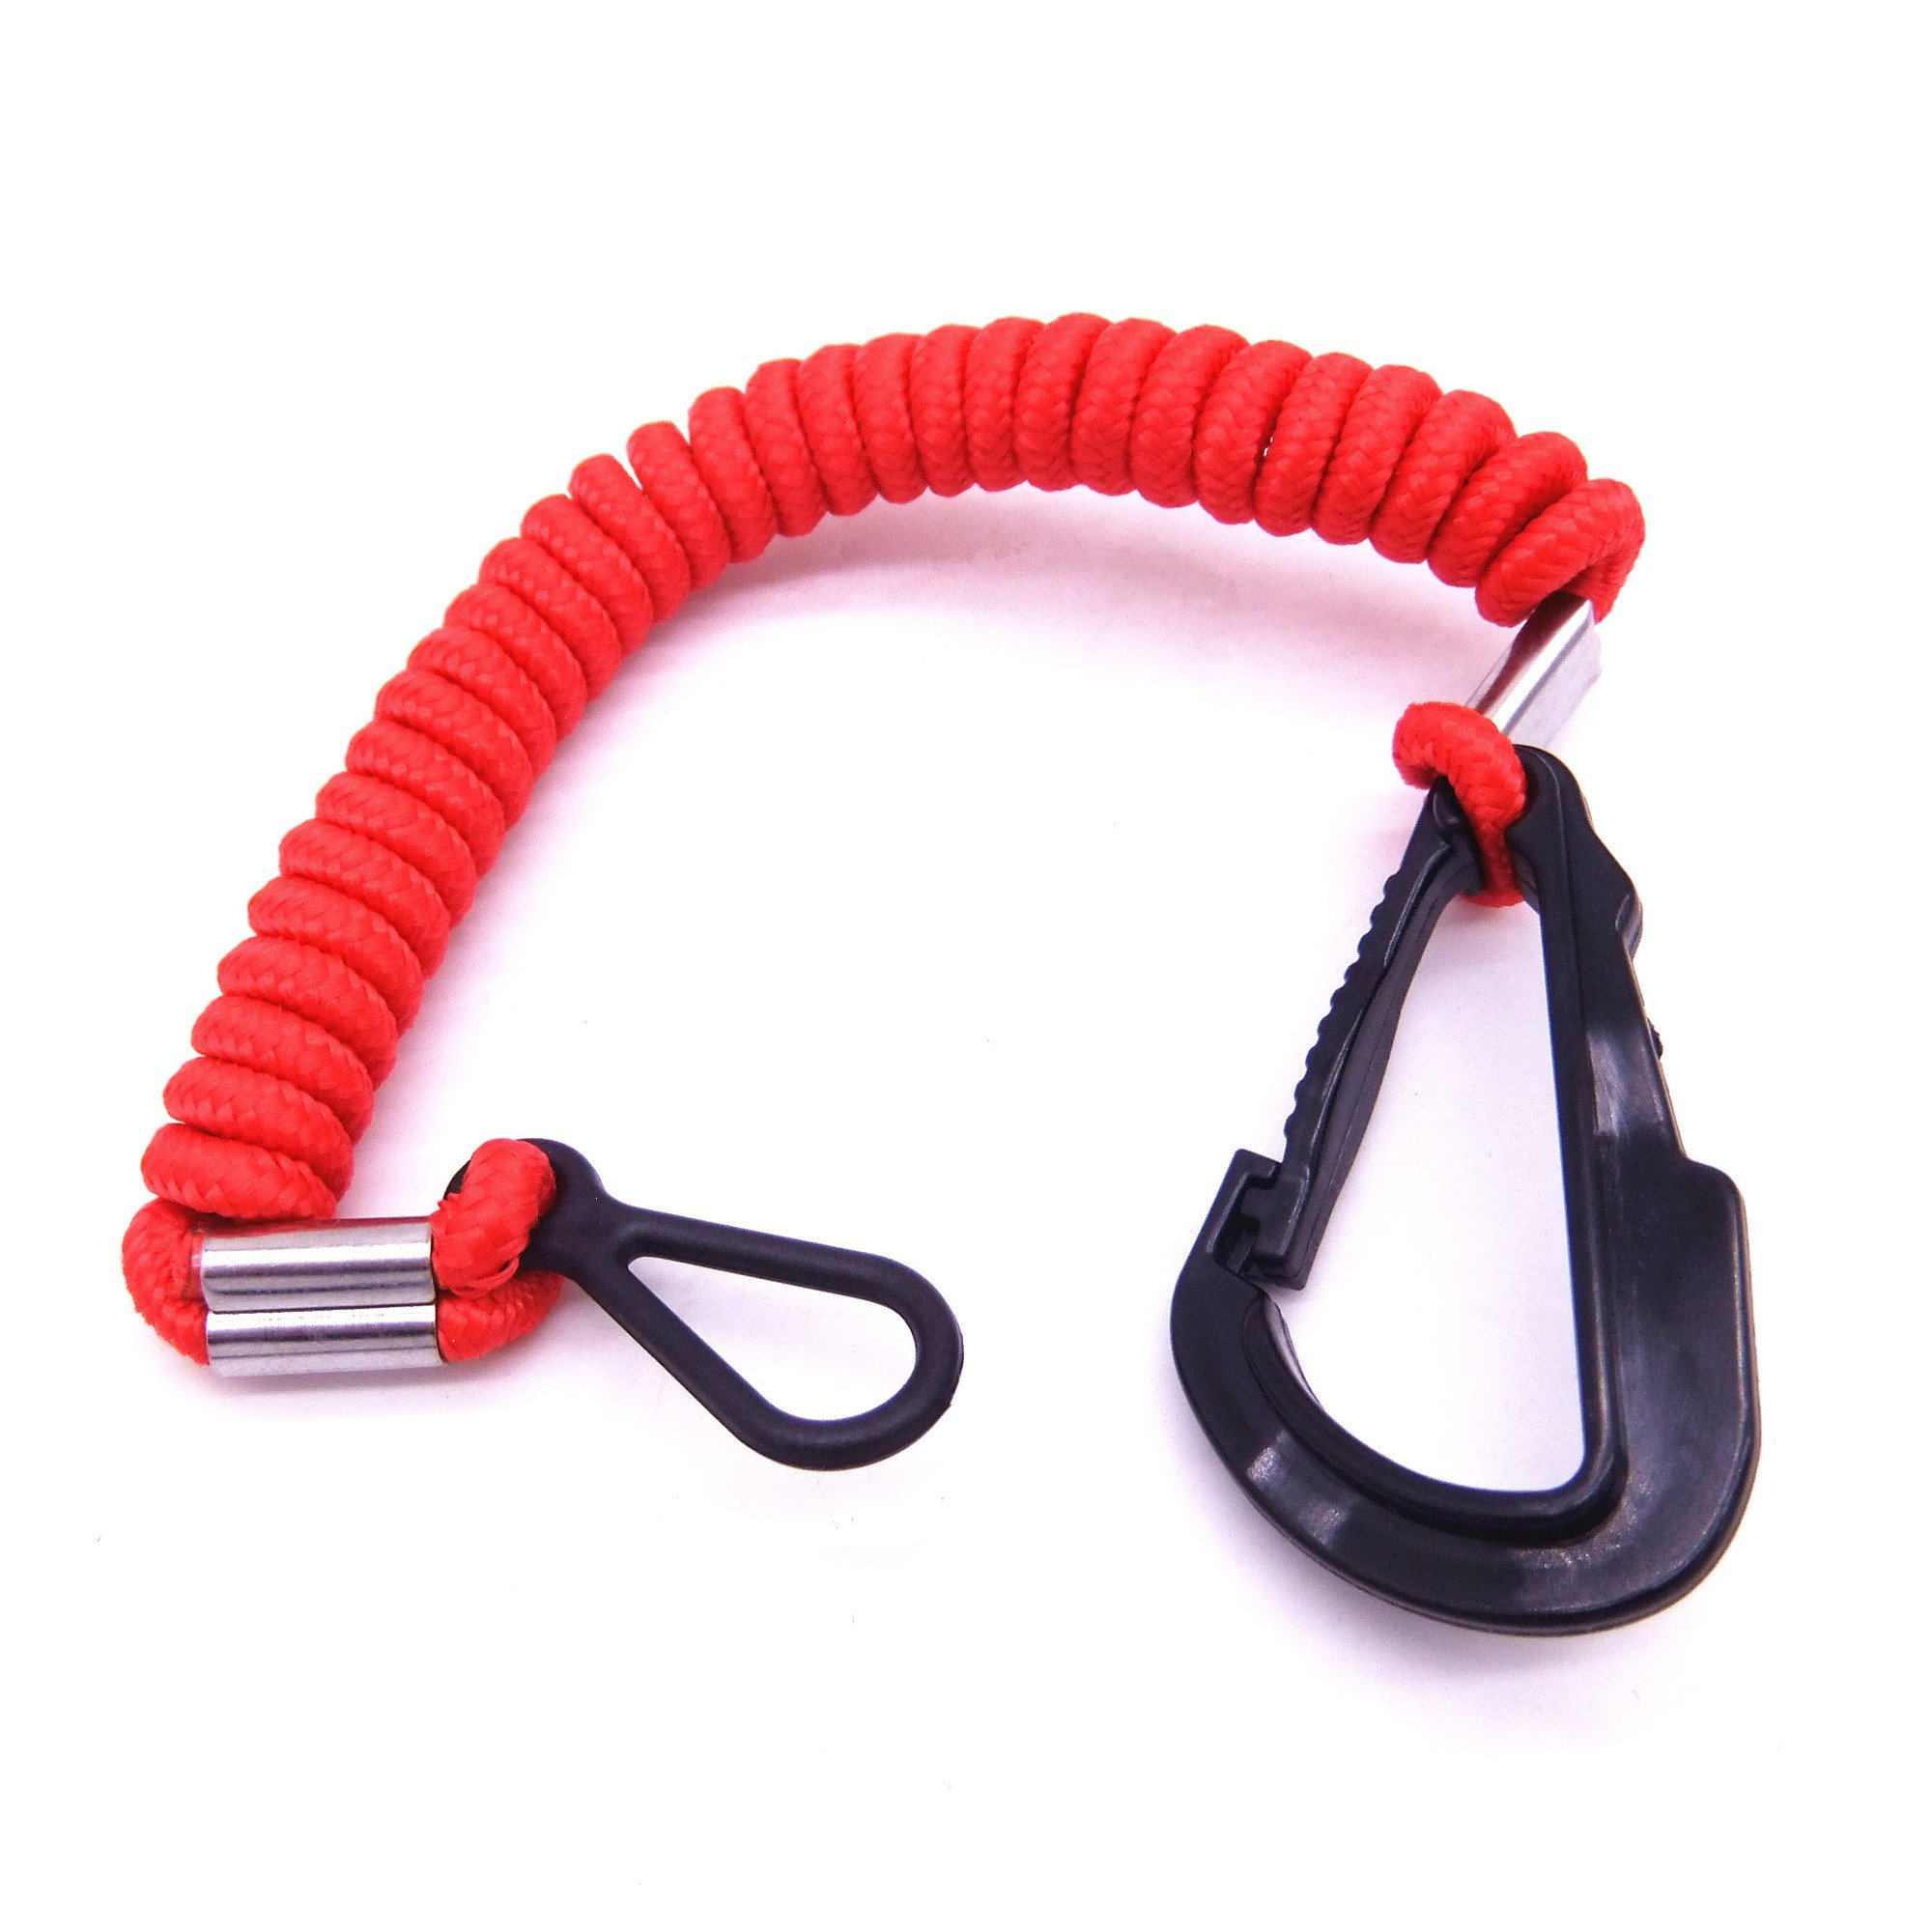 8M0092849 15920T54 15920A54 15920Q54 Emergency Stop Switch Safety Lanyard Cord for Mercury Mercruiser Boat Engine